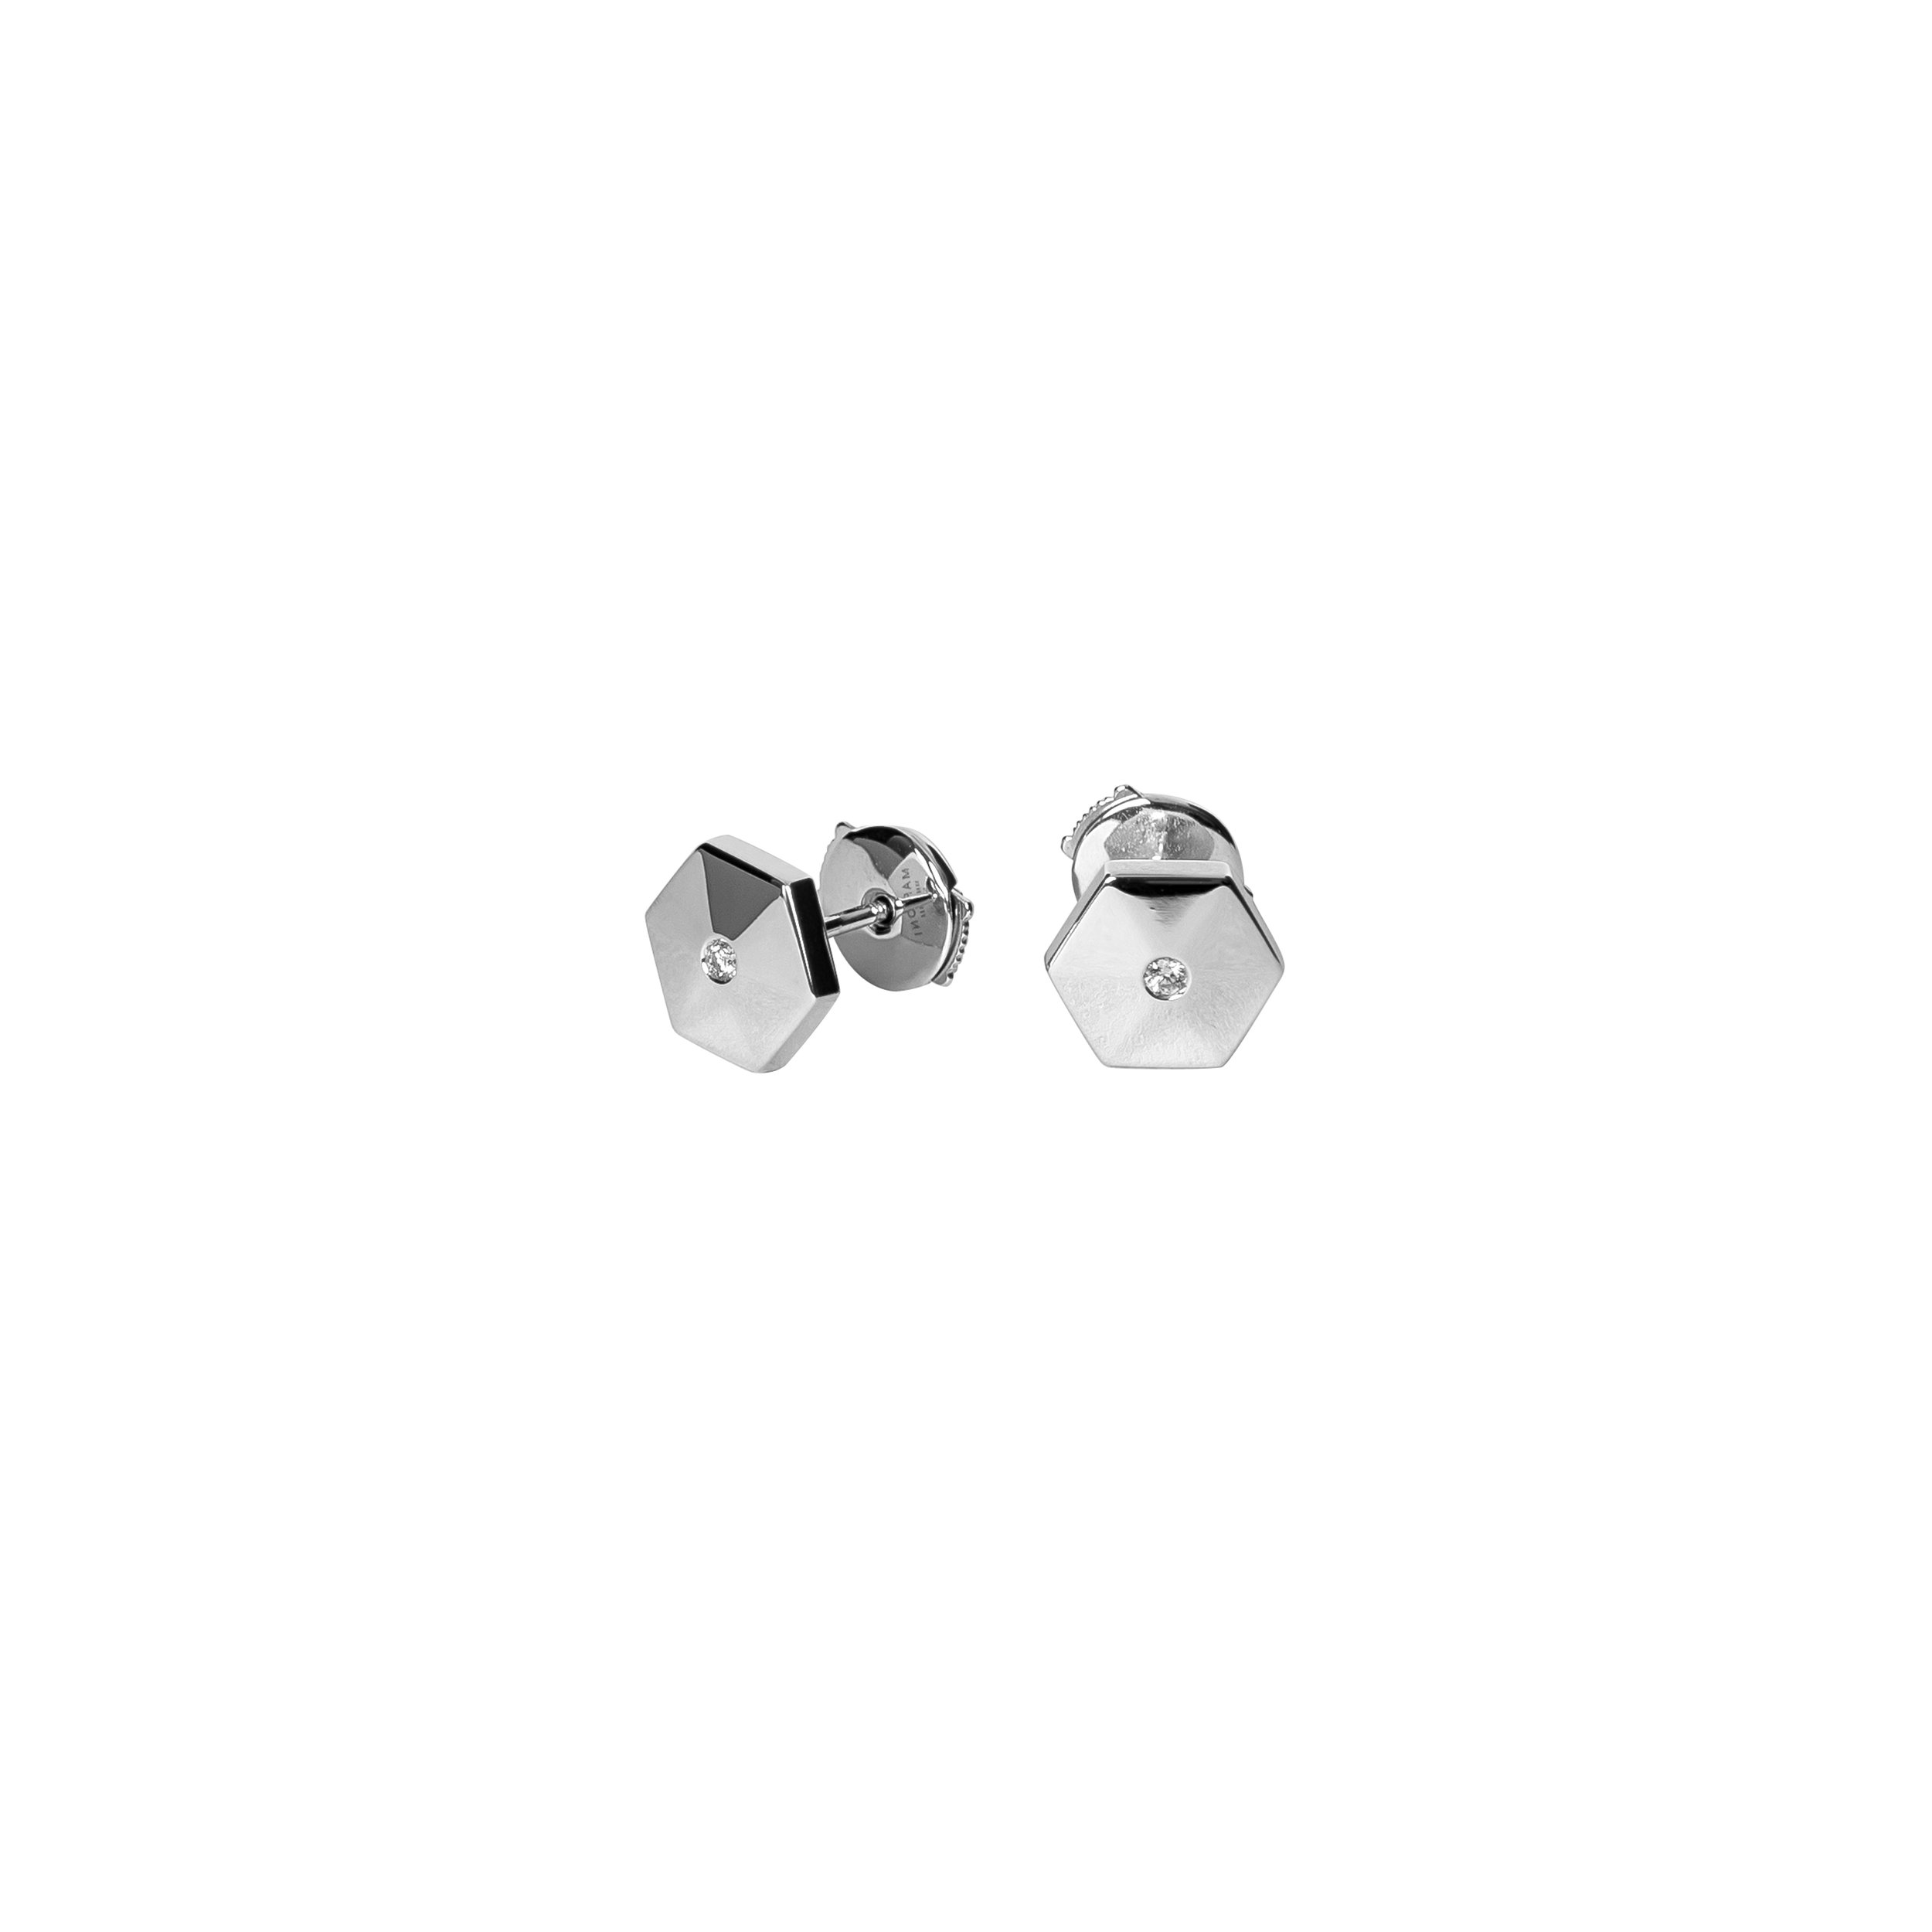 ABE1_Marioni_Jewelry_Studio_Products_WHITE_Earrings.jpg